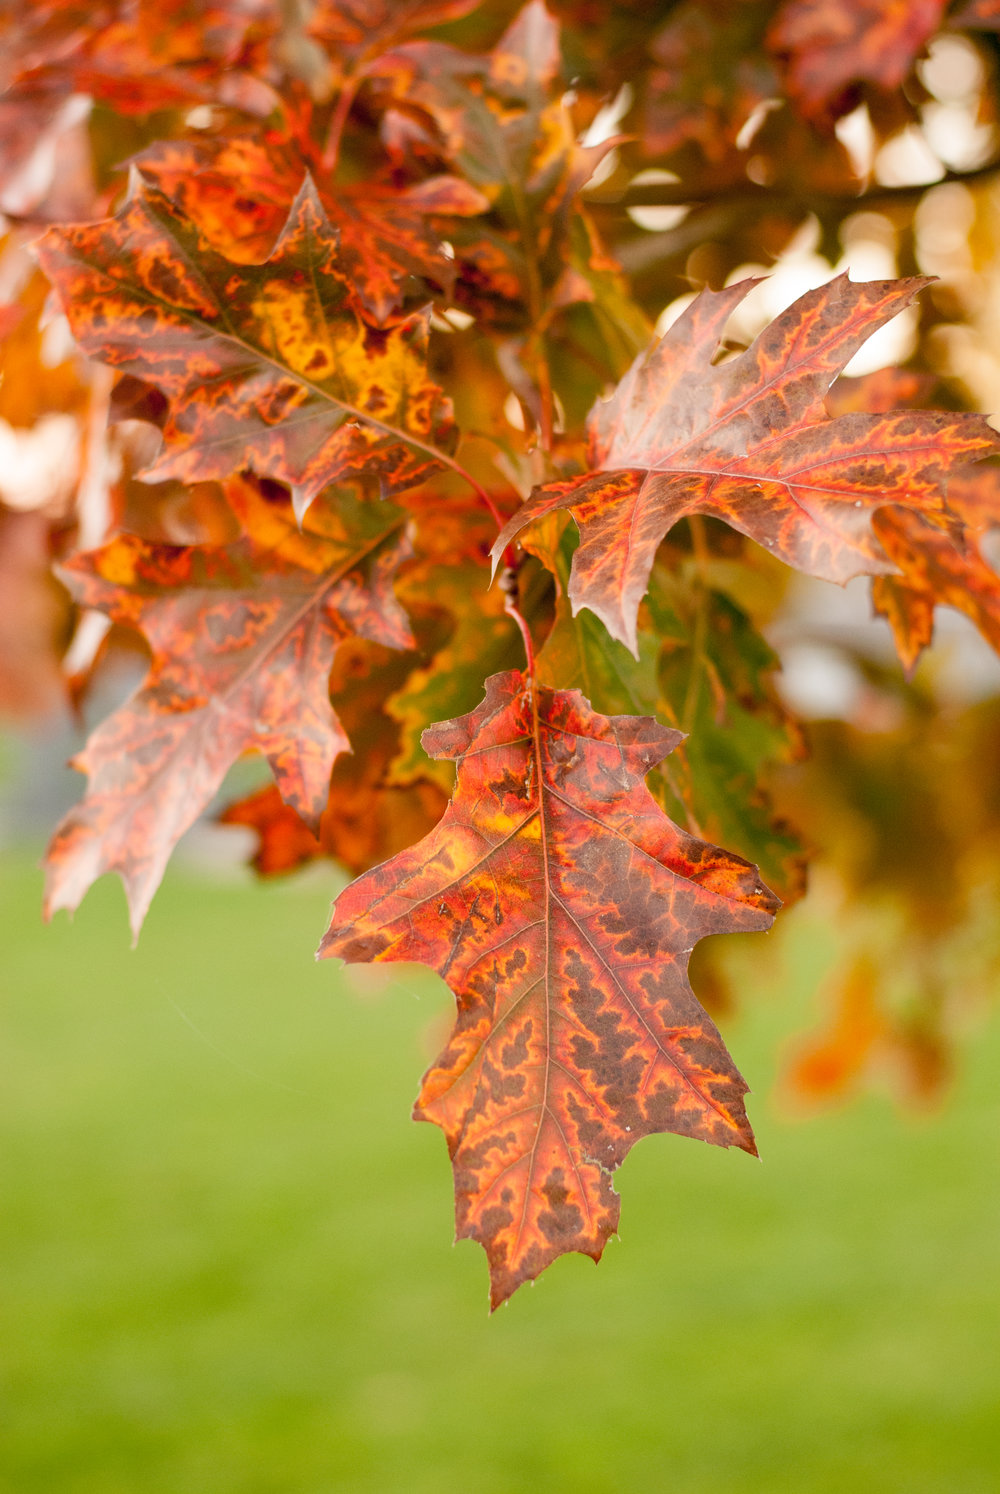 One amazing plus is the great fall color in certain varieties.